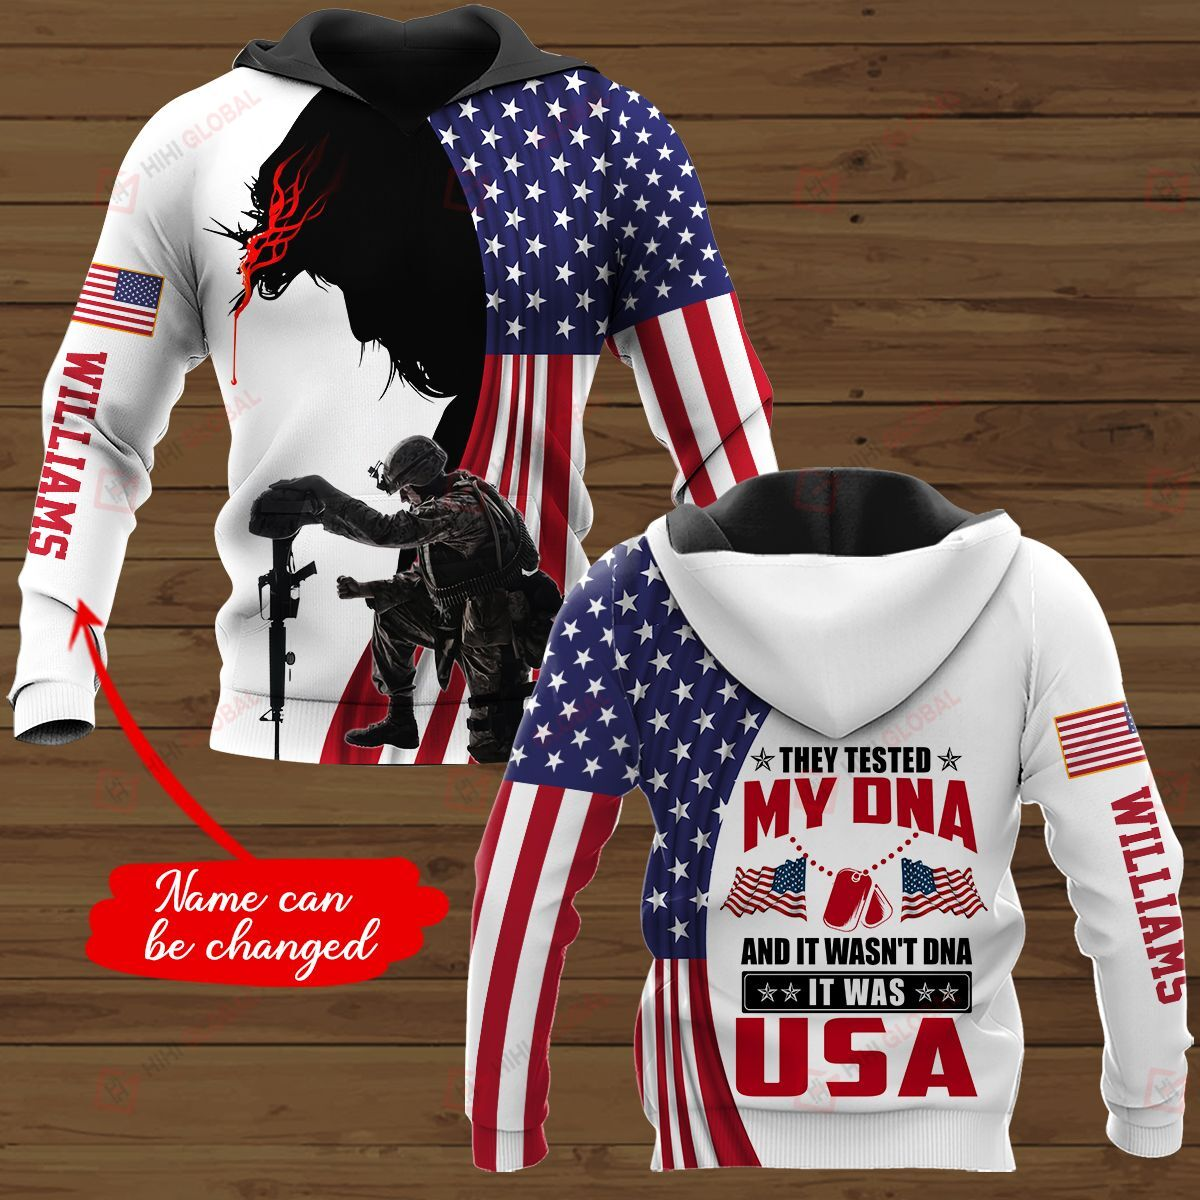 Custom Name 3D All Over Printed Shirt They tested my DNA It was USA - white version